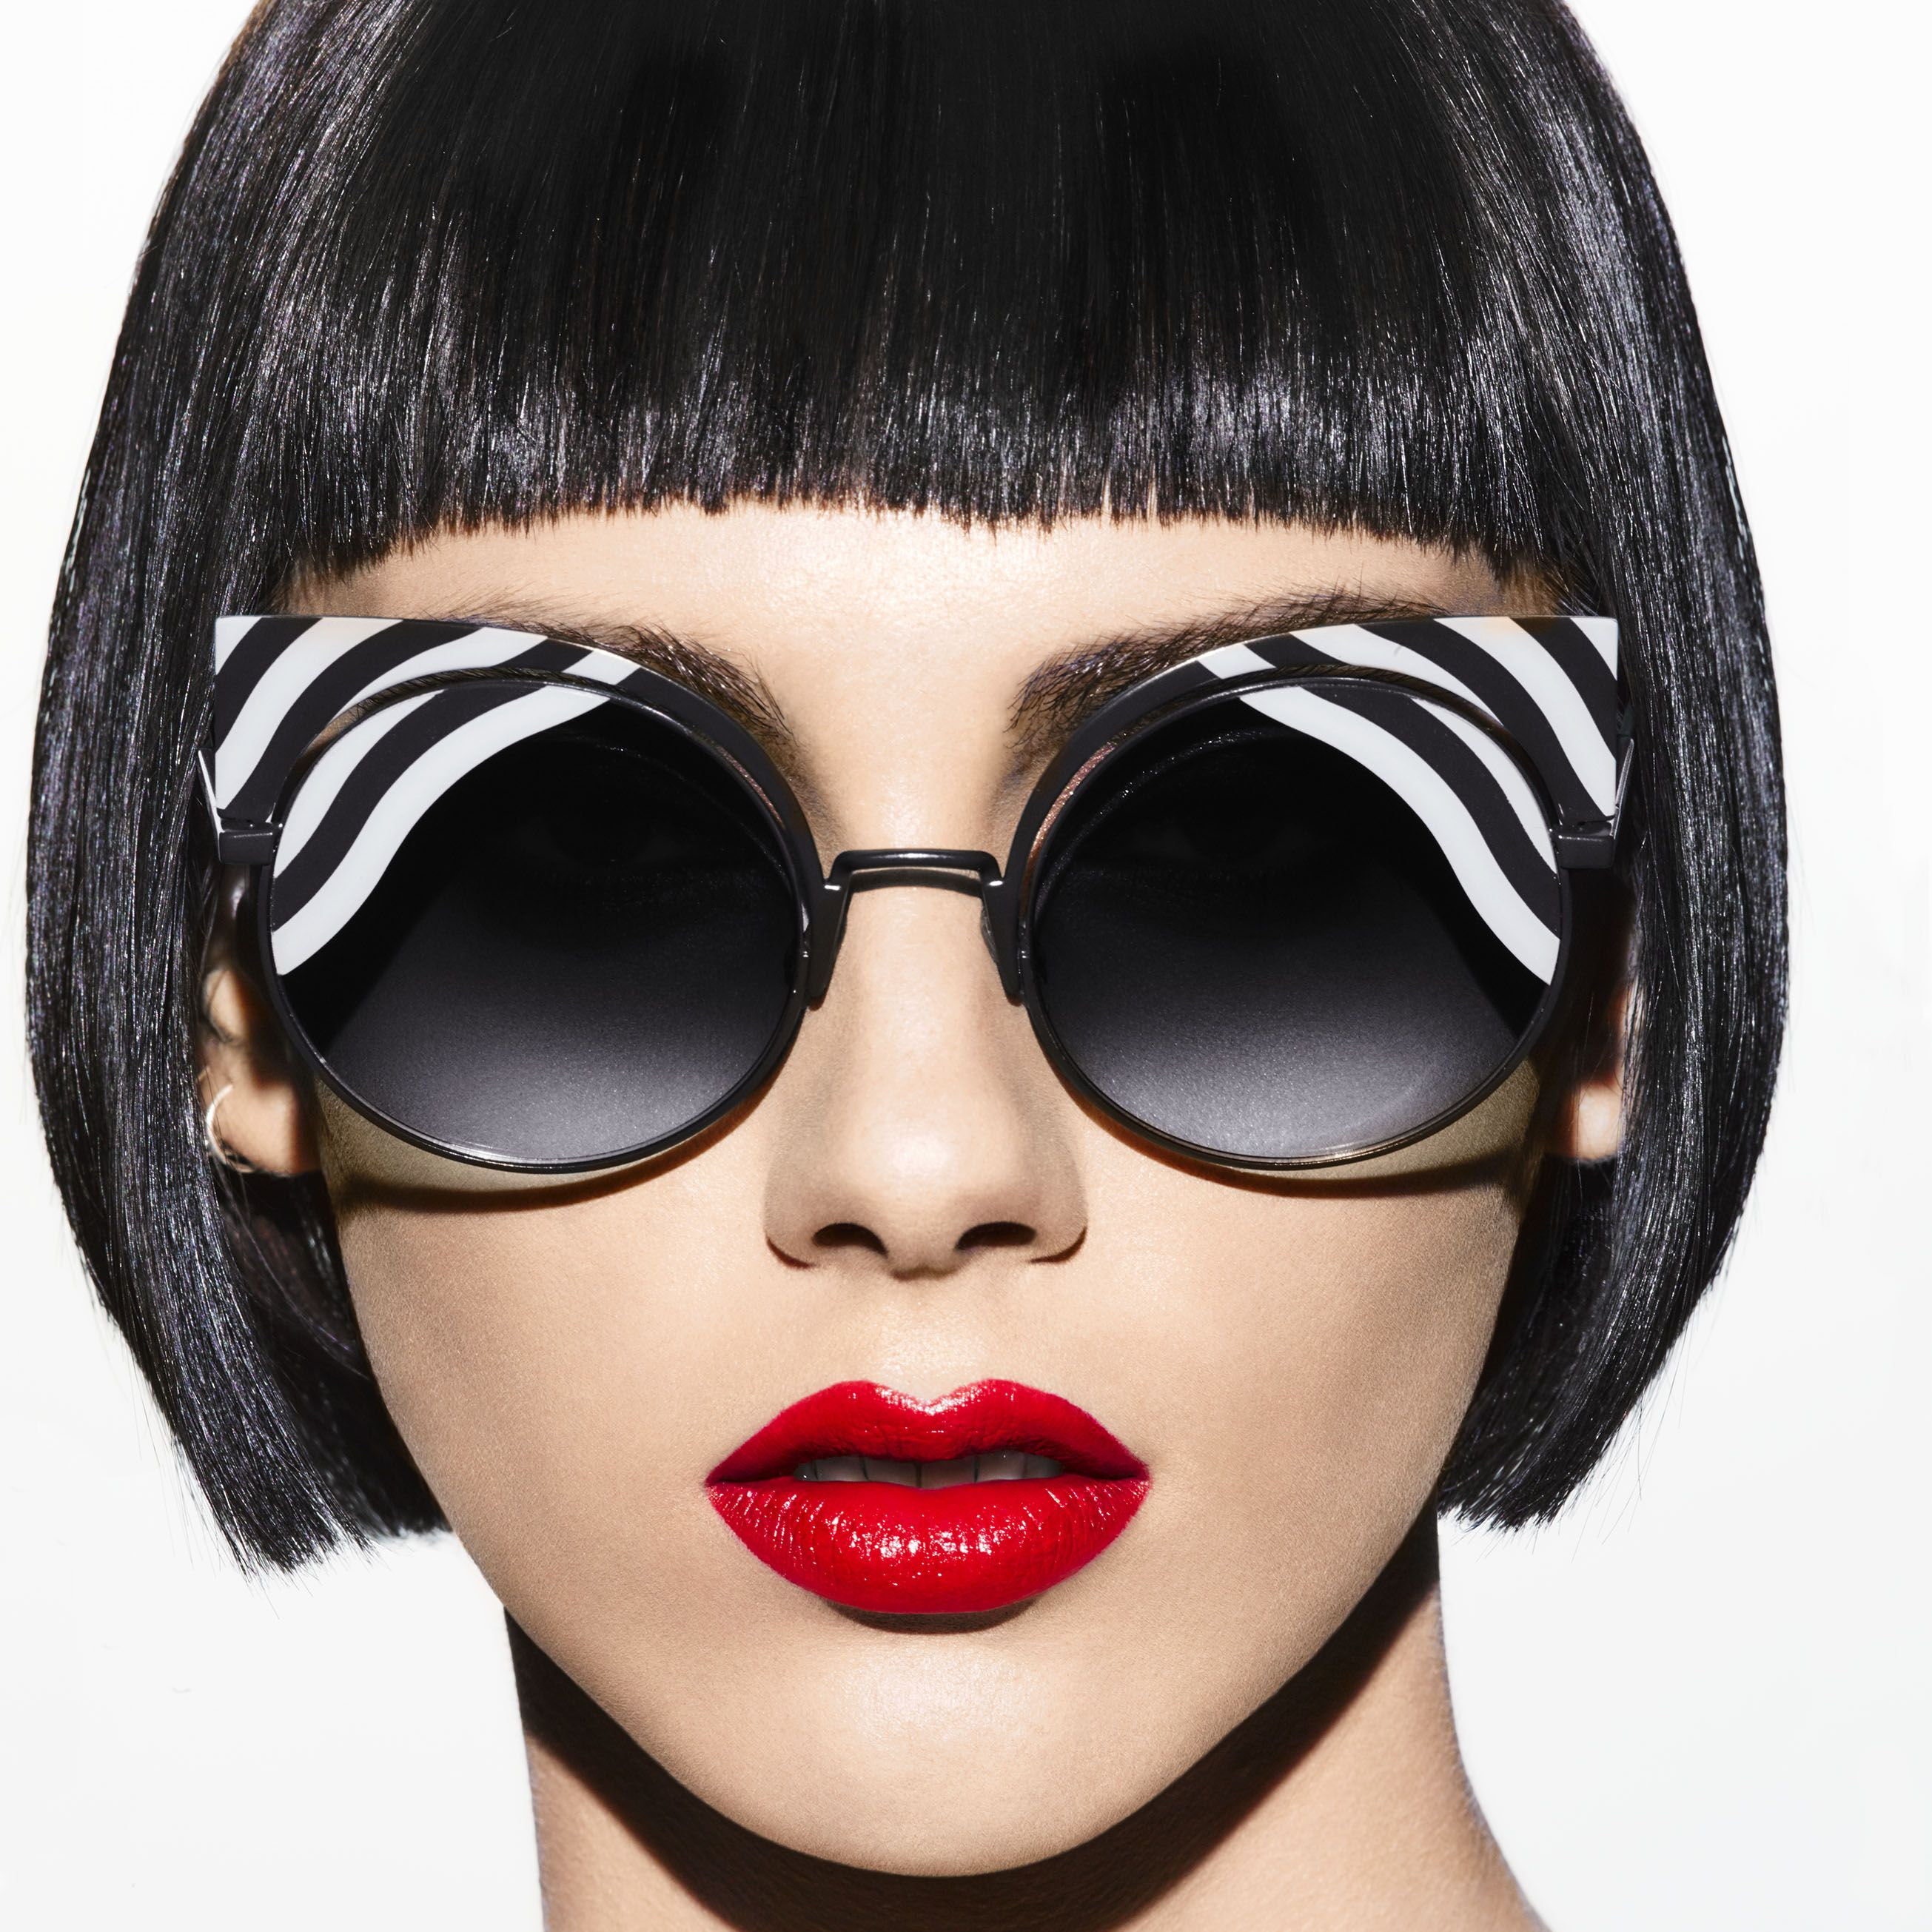 """<p><strong>BEAUTY BAZAAR:</strong><strong> </strong>Pop your pout with <a href=""""http://www.neimanmarcus.com/Tom-Ford-Beauty-Lip-Color-Cherry-Lush/prod142510176/p.prod"""" target=""""_blank"""">Tom Ford Lip Color</a> in Cherry Lush ($52).</p><p><strong>Fendi </strong>sunglasses, $695, 888-721-7219.</p>"""